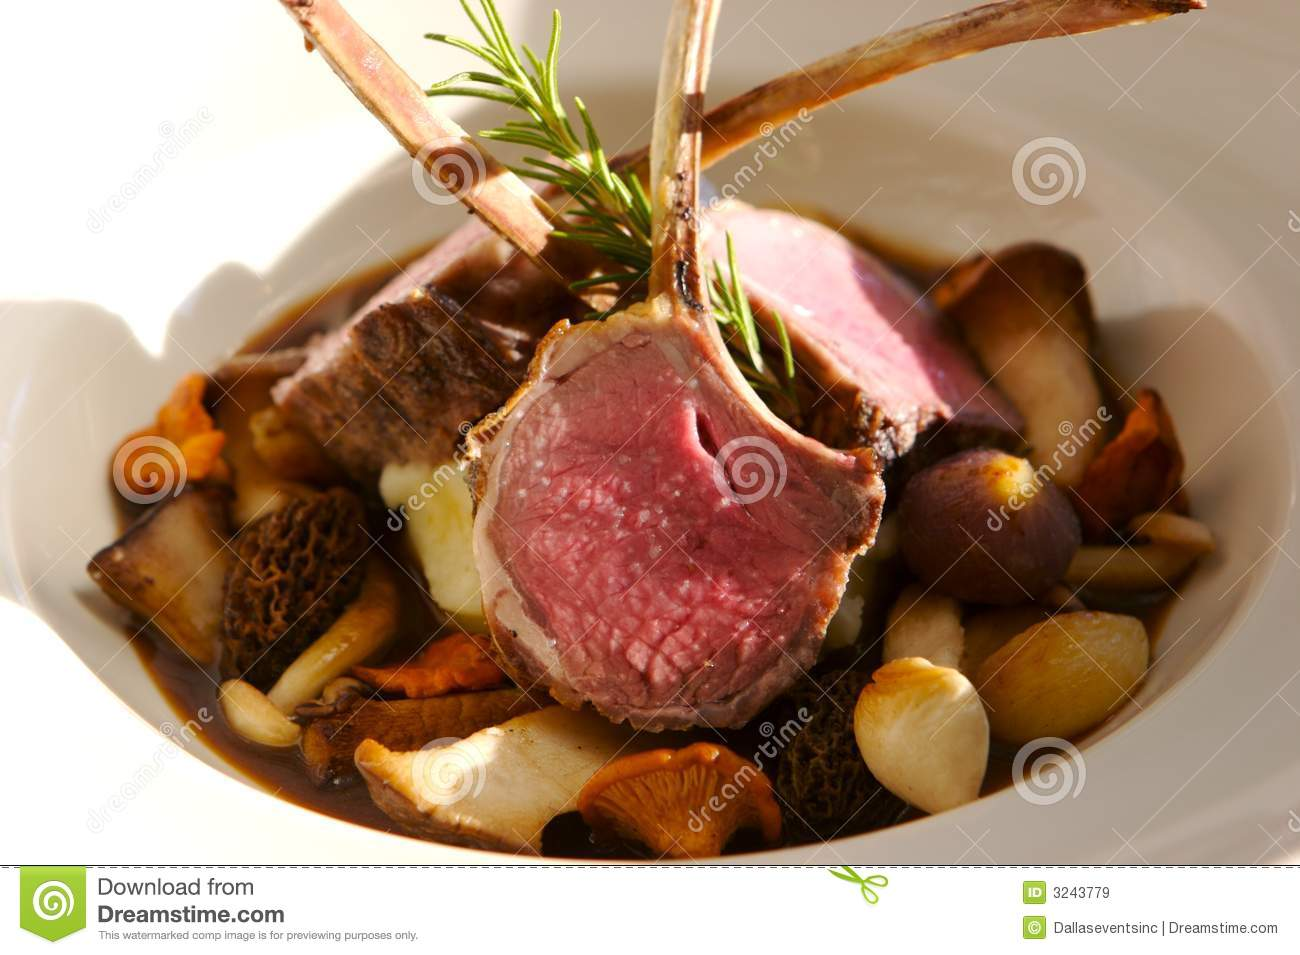 Roasted rack of Lamb on a bed of mushrooms.